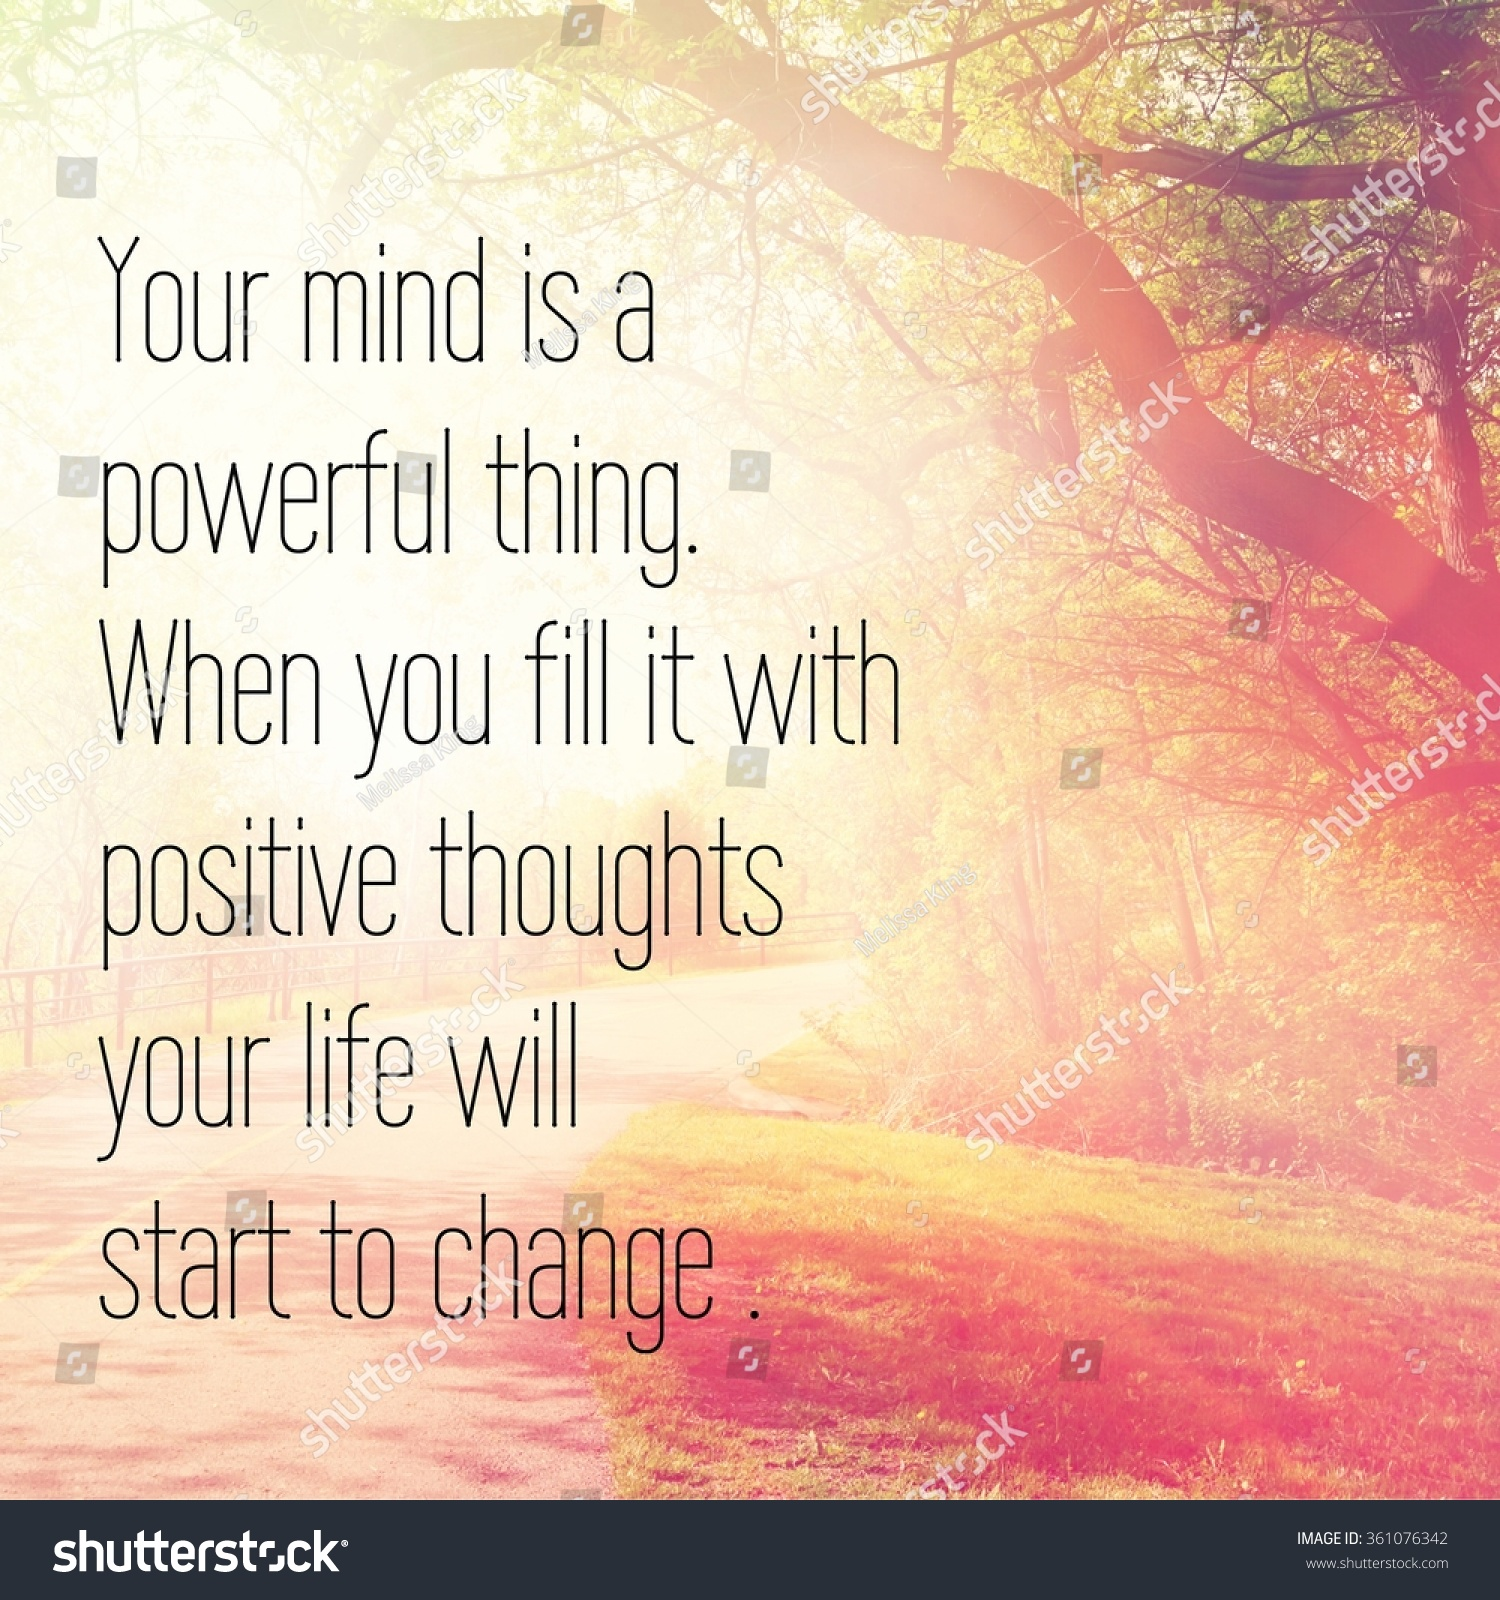 Free Your Mind Quotes Royaltyfree Inspirational Typographic Quote  Your… 361076342